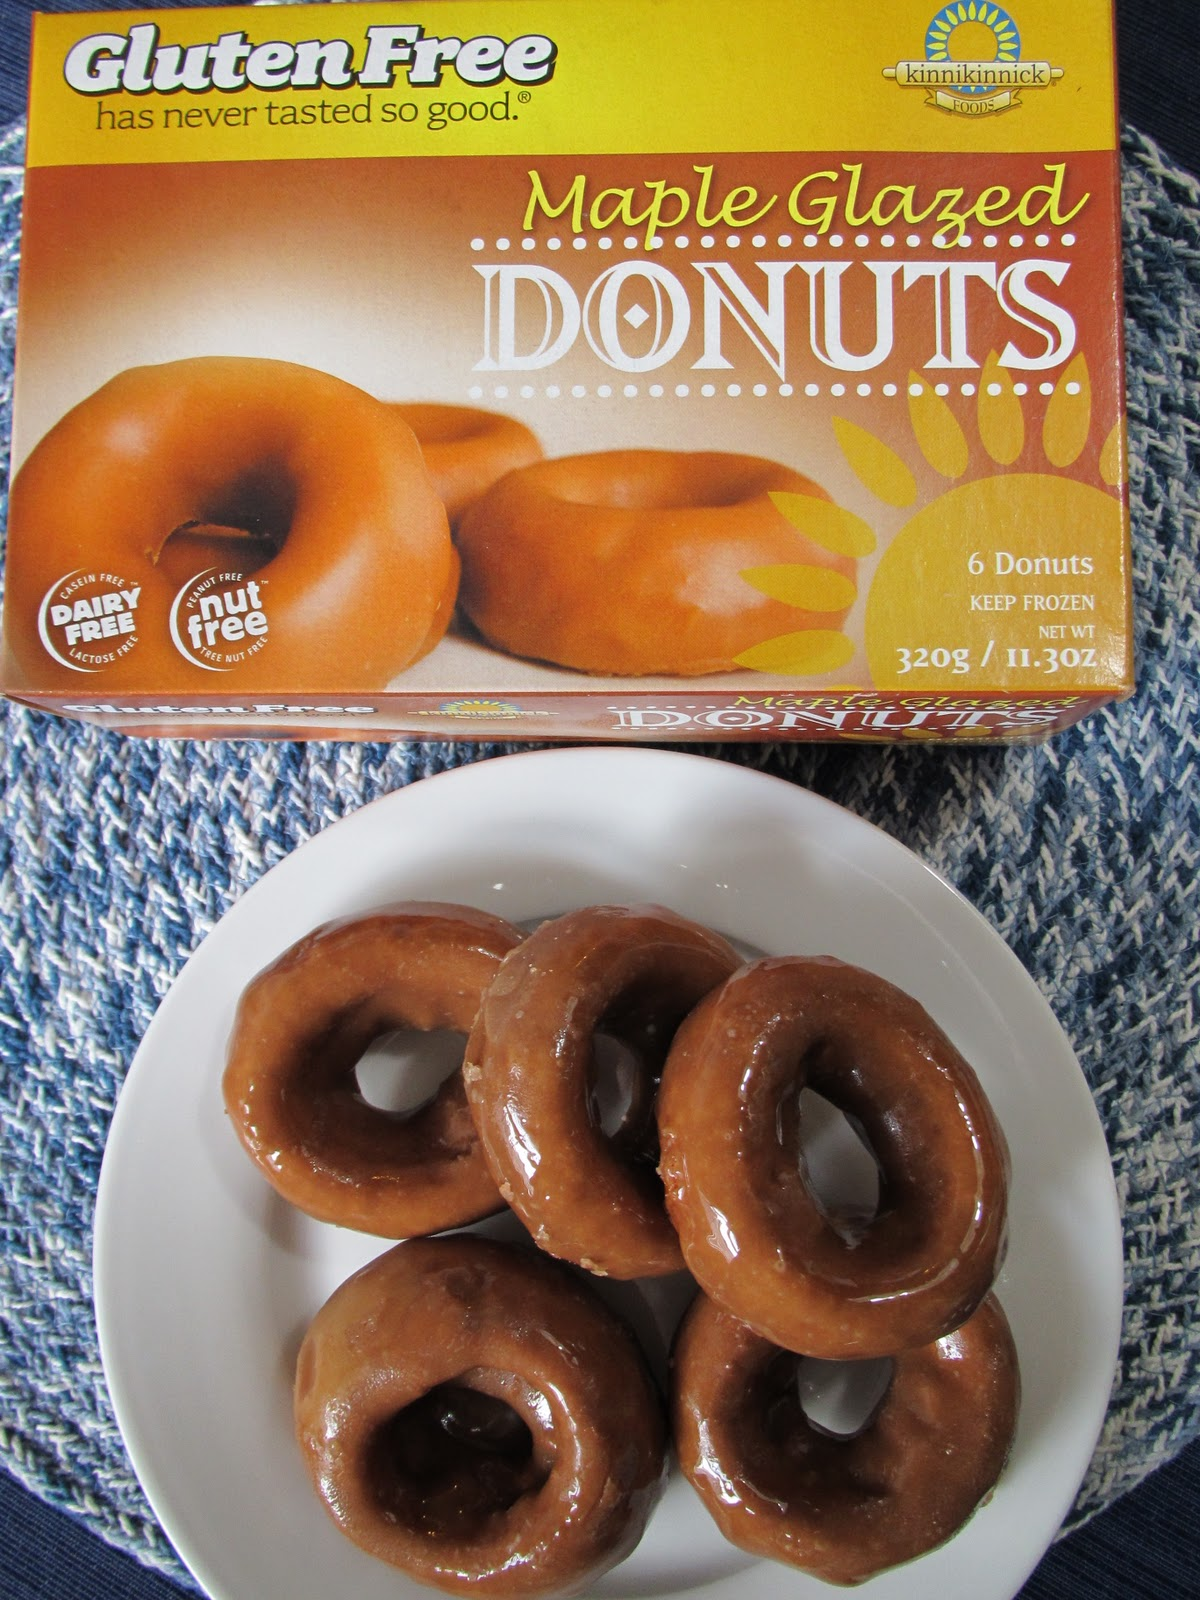 ... Gluten Free Donuts: Product Review (dairy free as well